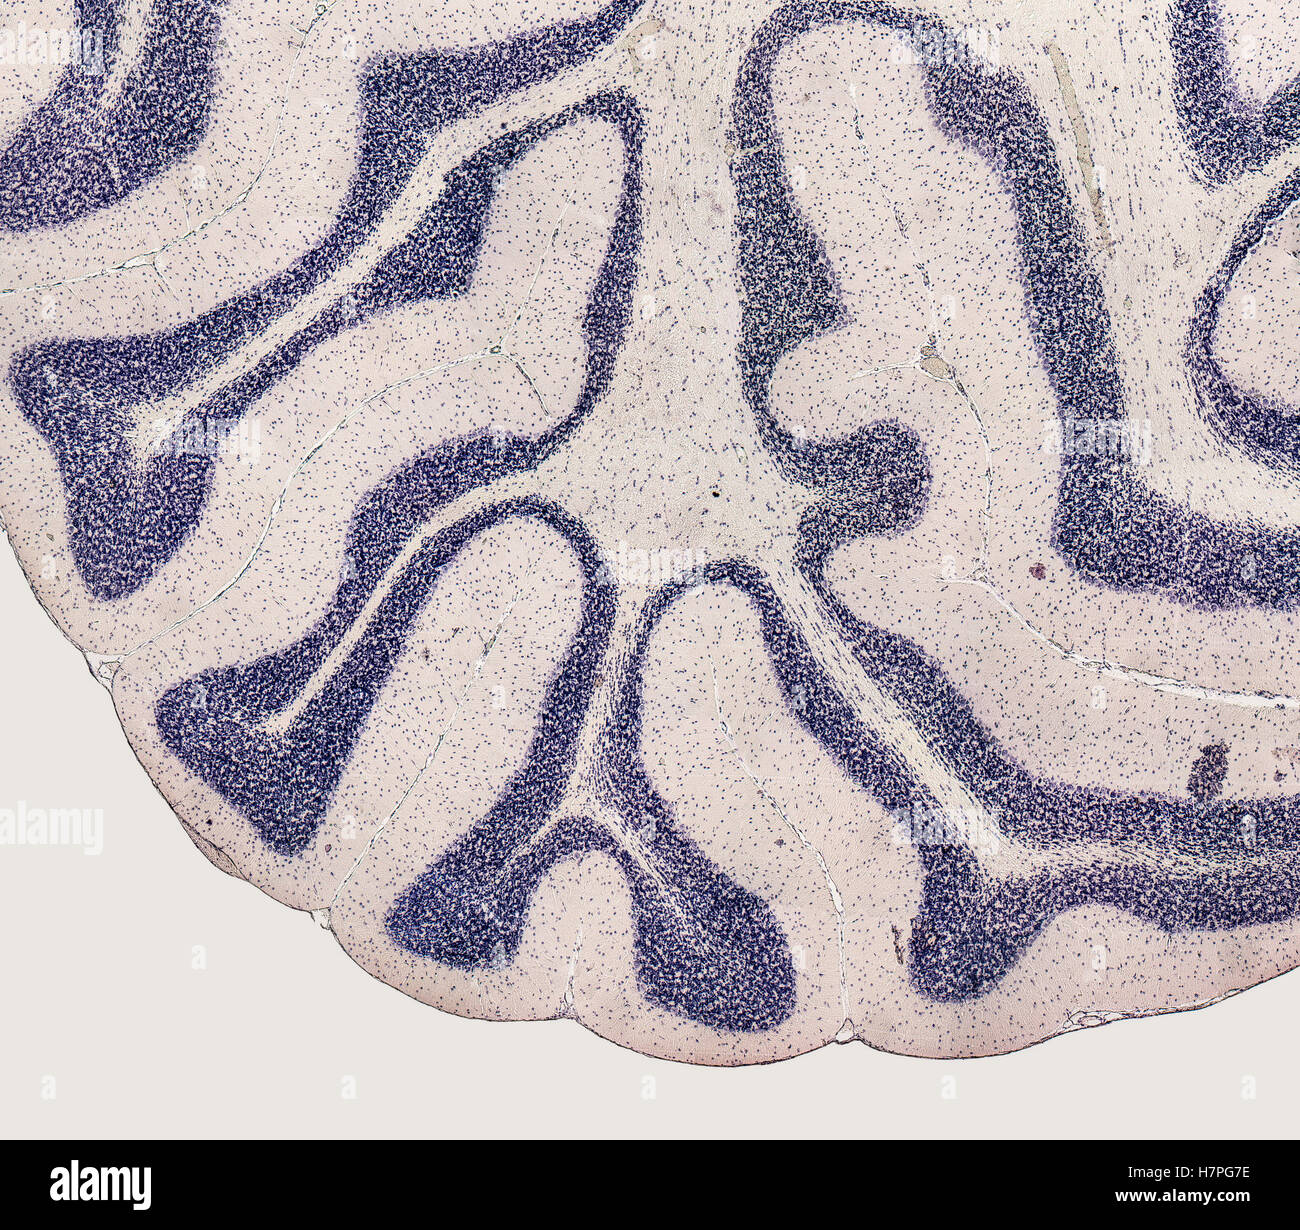 microscopic detail showing the brain of a rat - Stock Image